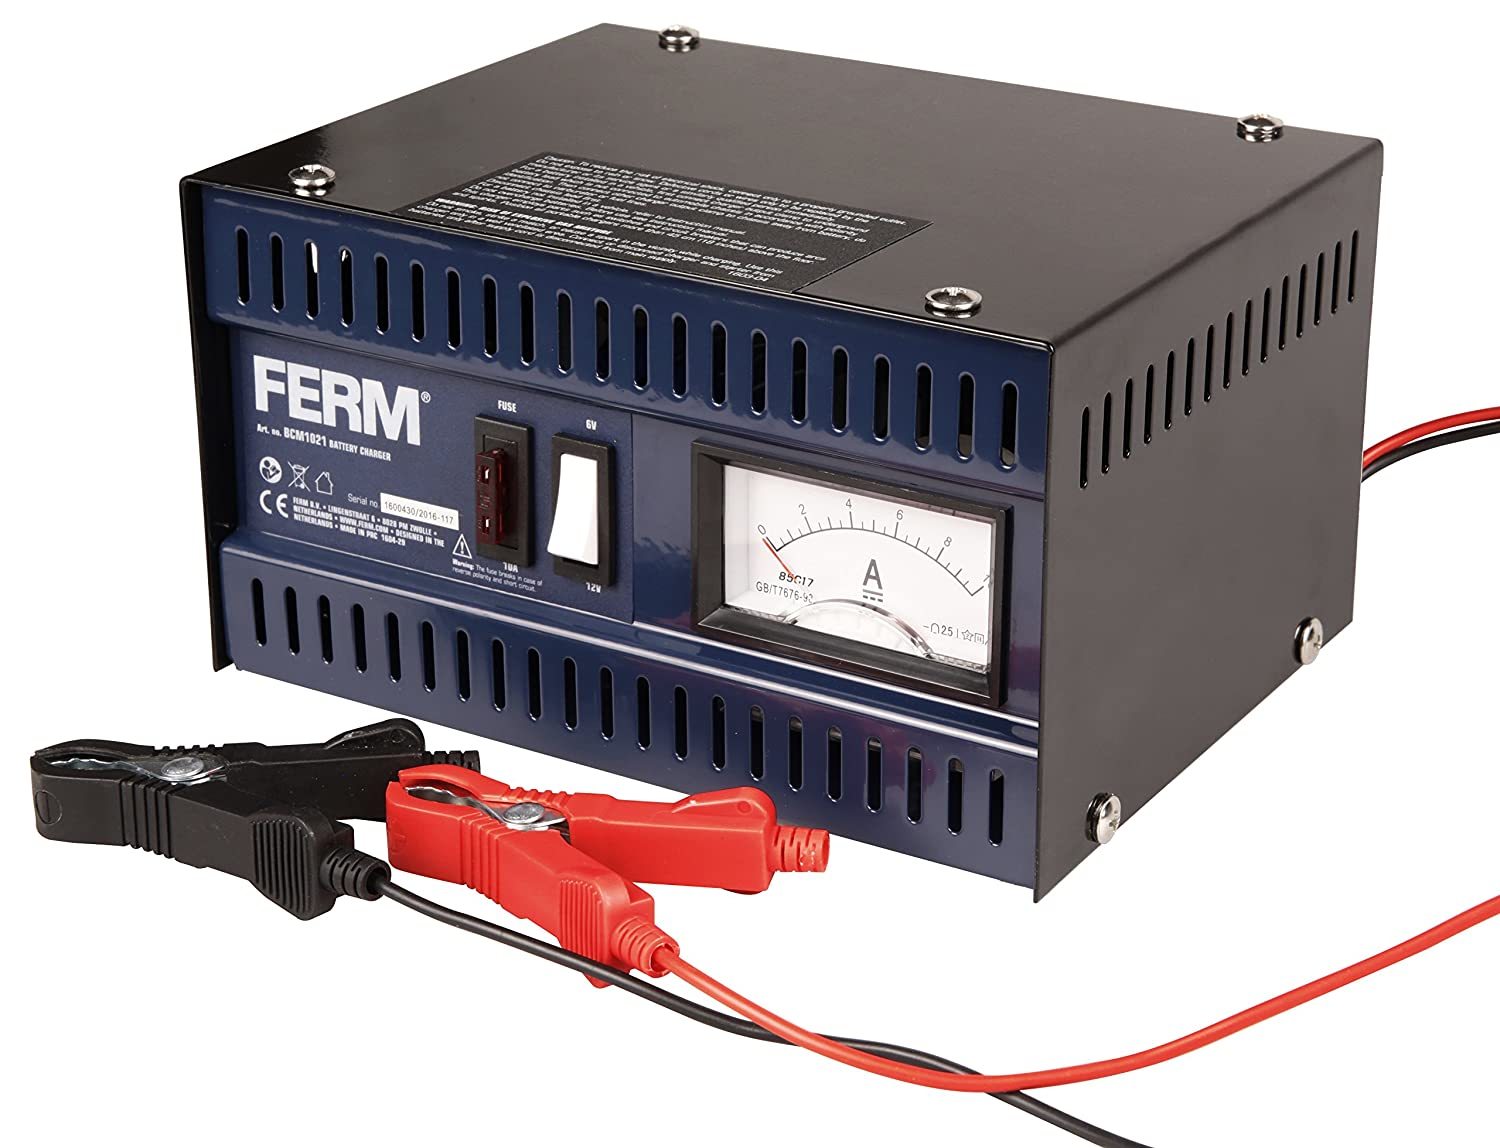 FERM BCM1021 Electronic Battery Charger - 6V/12V - Max. 75 Ah - 5 A - With Battery terminal cables